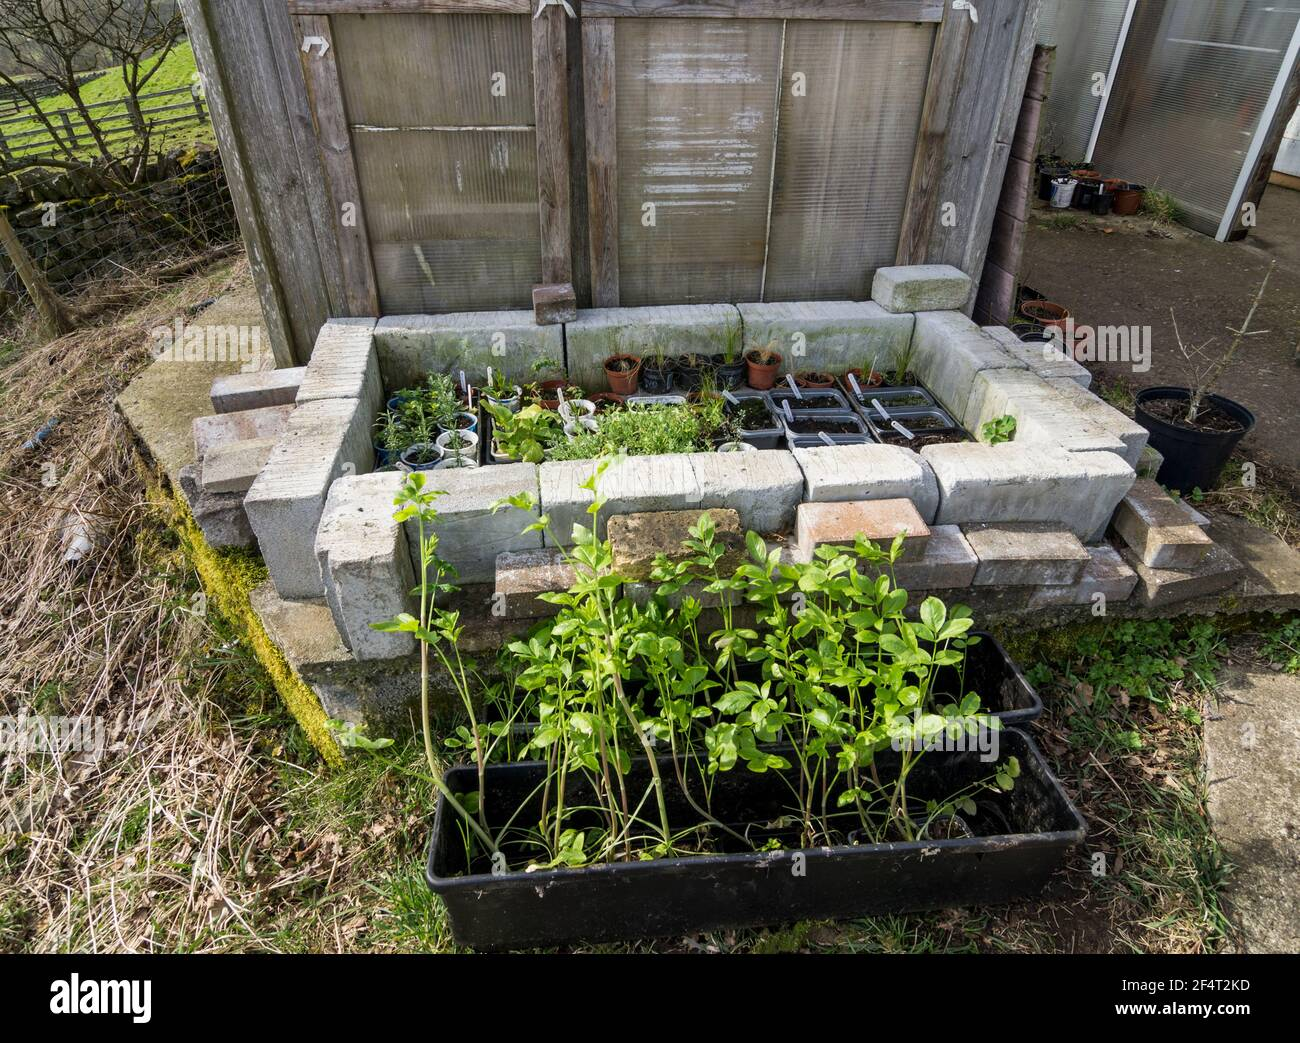 Cold frame made from breeze blocks and plastic panels; rows of young ammi majus plants are ready to be transferred. UK Stock Photo